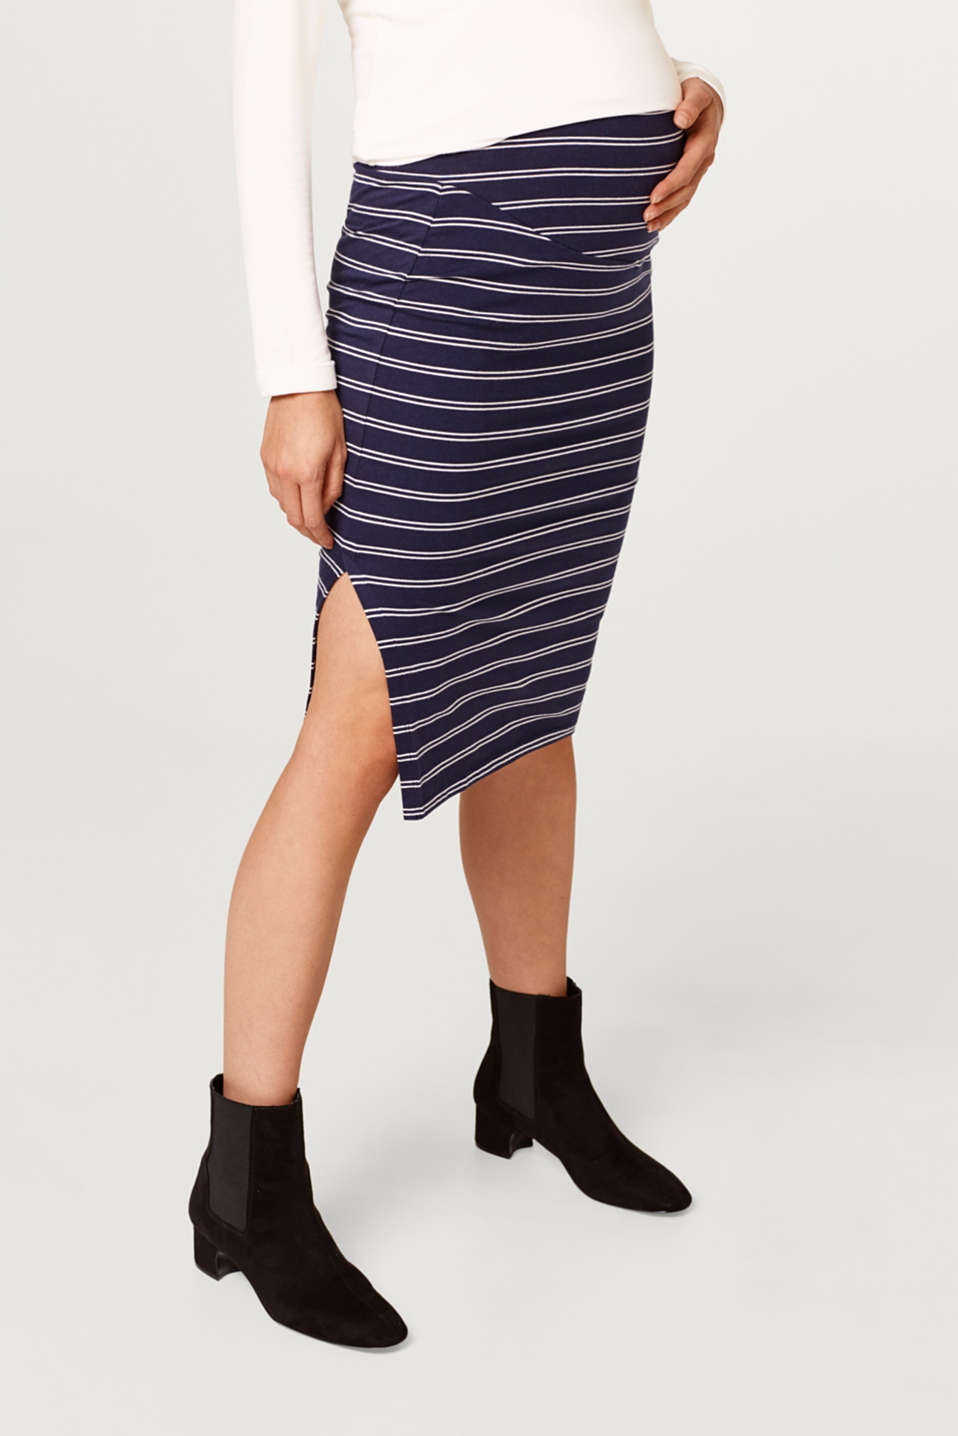 Esprit - Stretch jersey midi skirt with an over-bump waistband